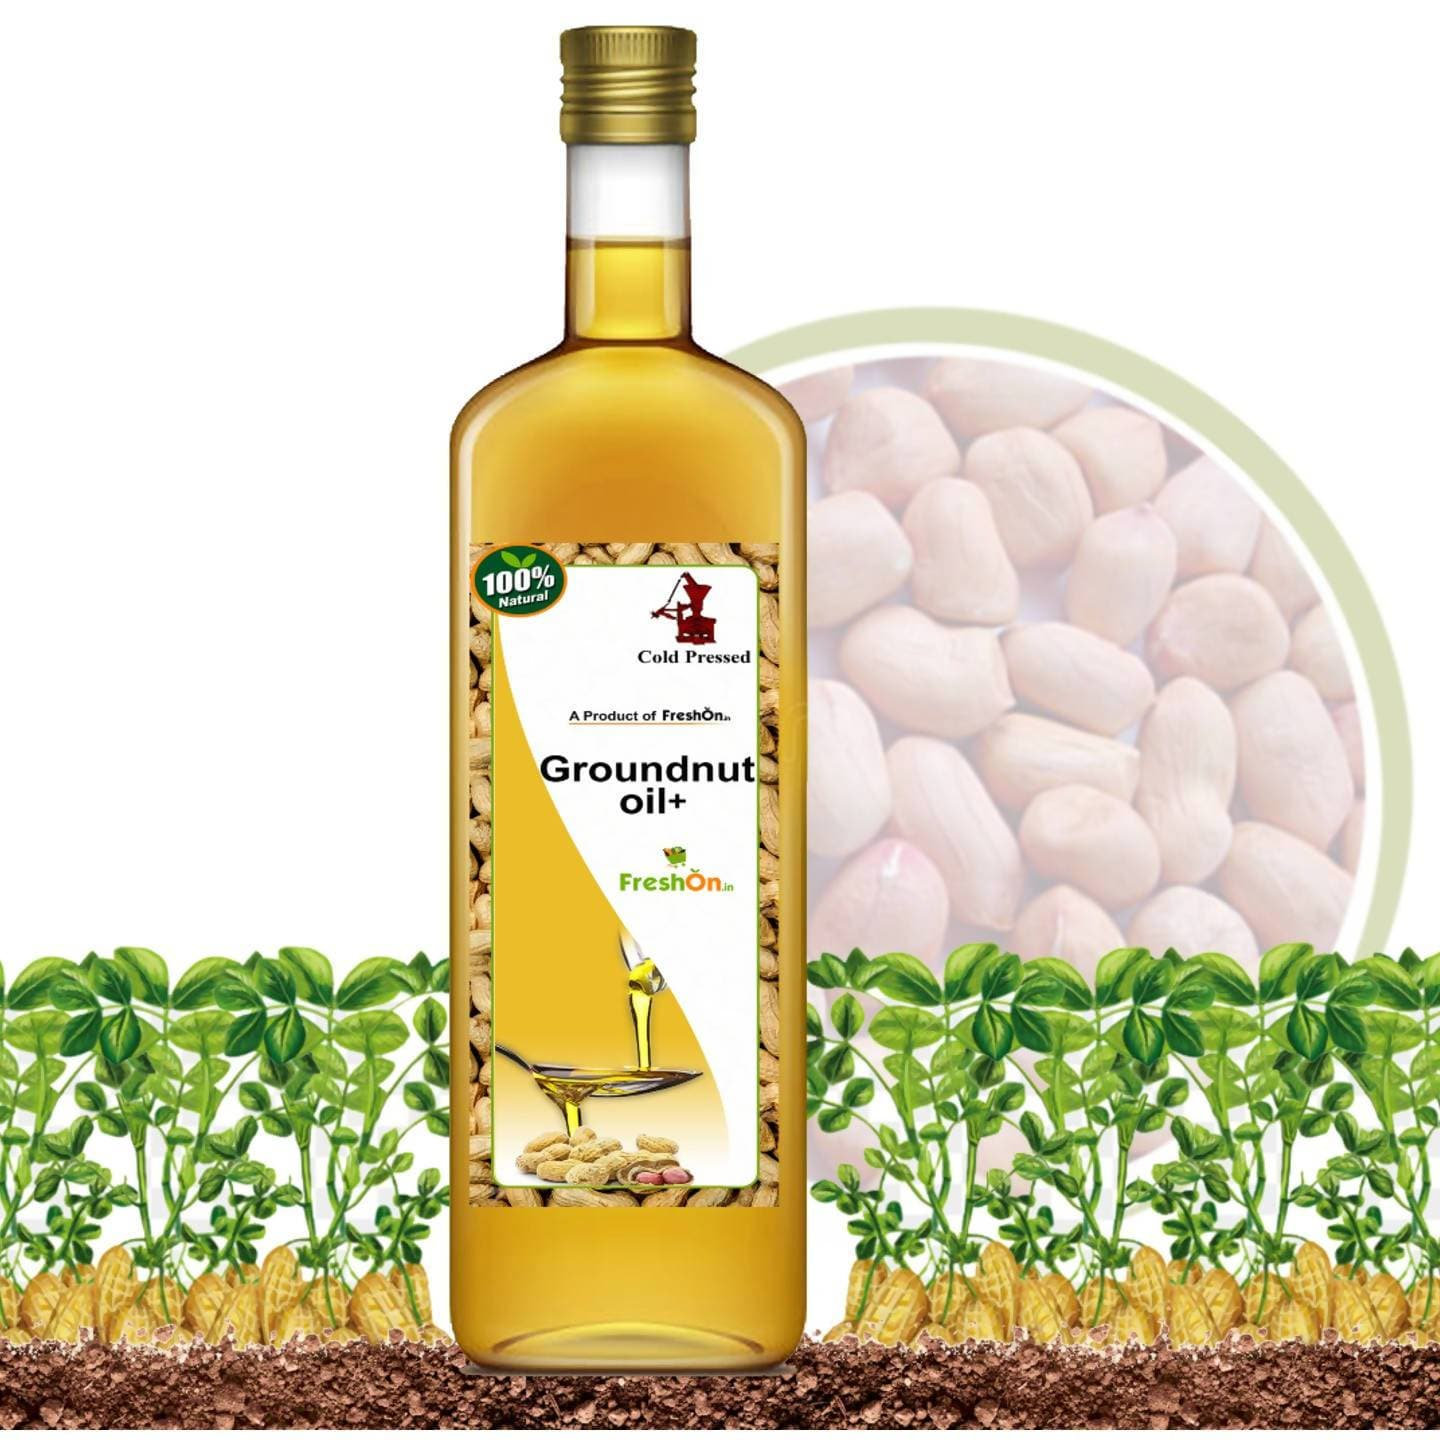 Freshonin Groundnut Oil + Cold Pressed